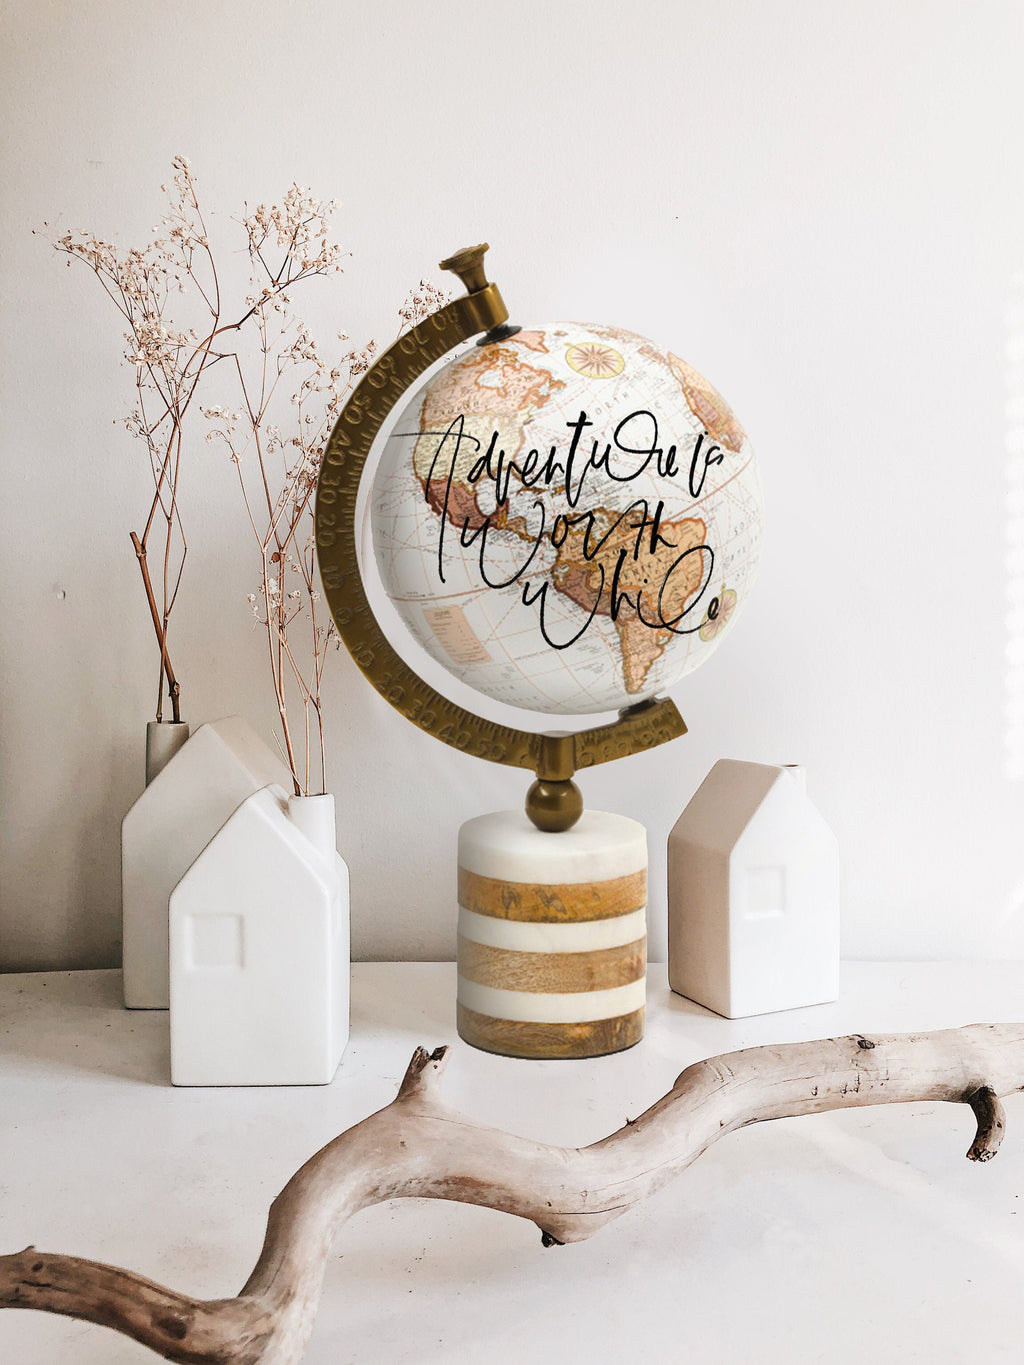 Calligraphy Wedding Globe Decor, Globe Lettering Home Decor, Wedding Guest Book, Globe Guest Book, Neutral Globe Decor